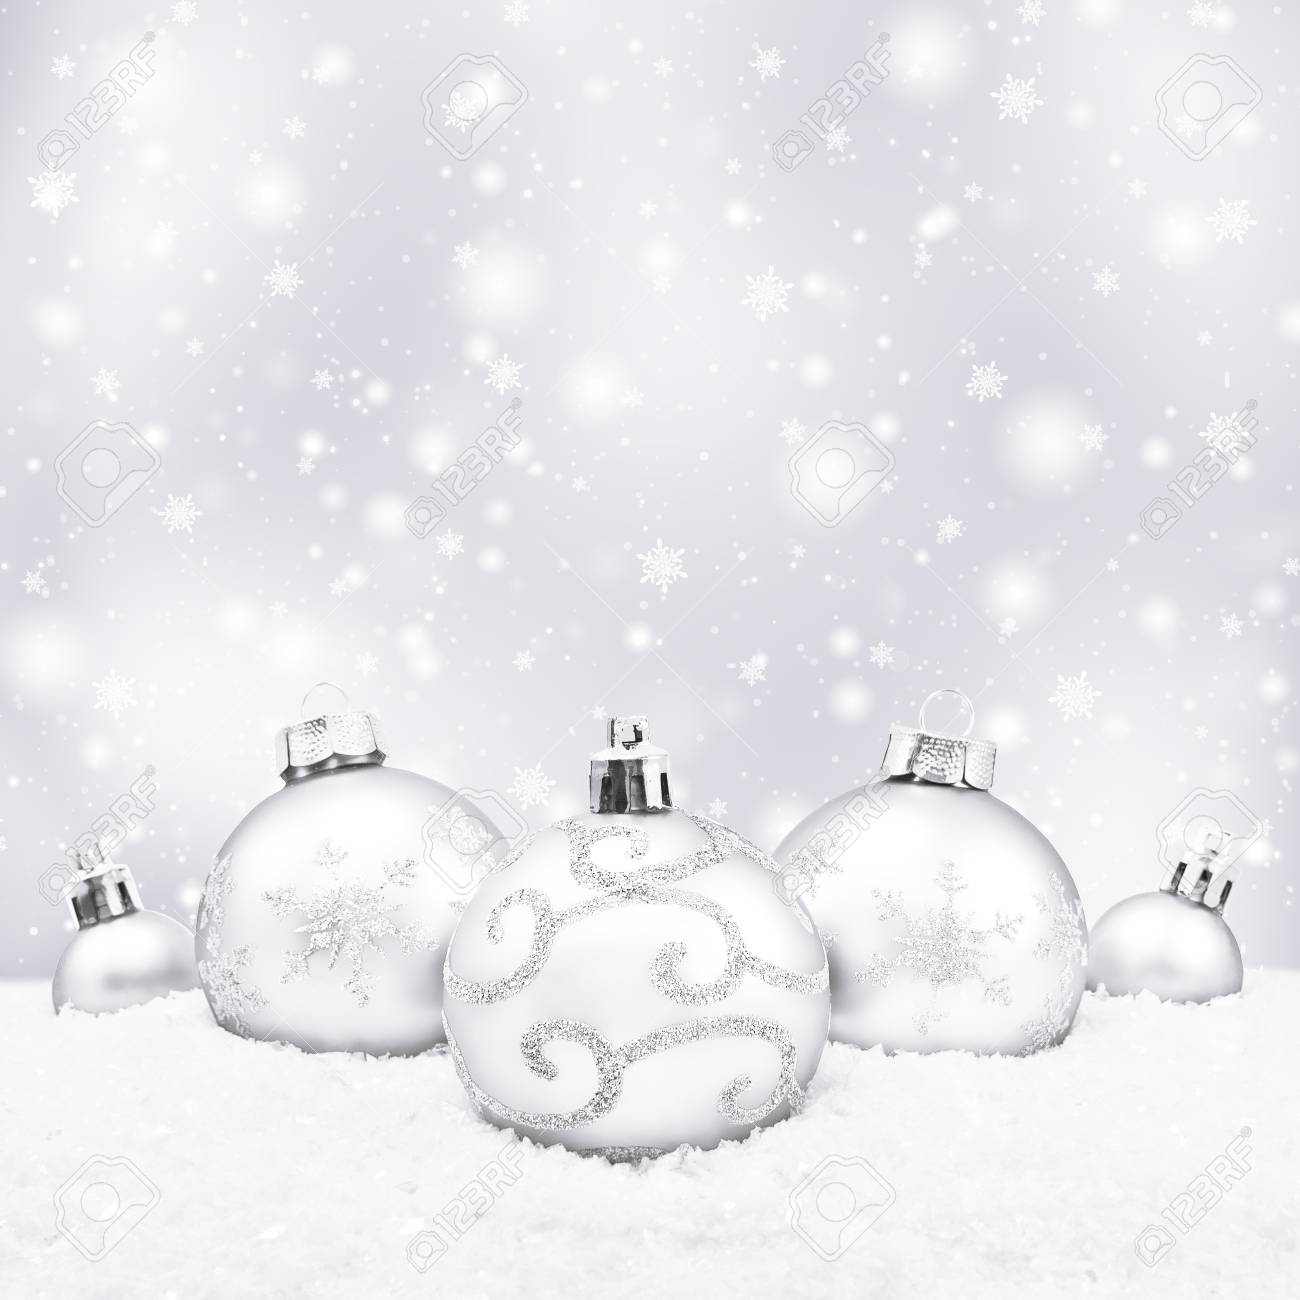 White Christmas Background.Five White Christmas Balls On Silver Background